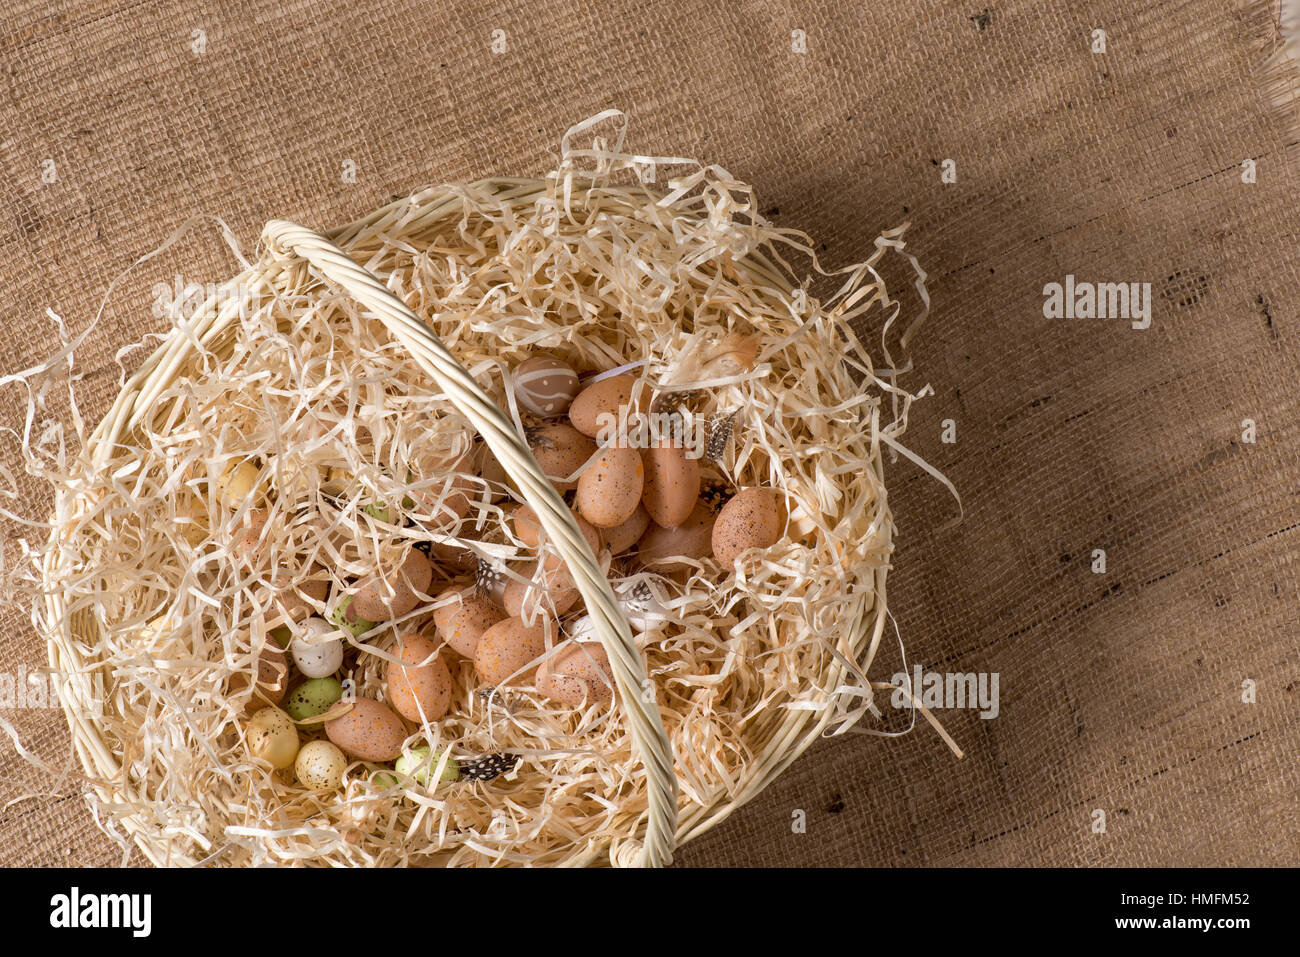 Quail eggs in basket - Stock Image